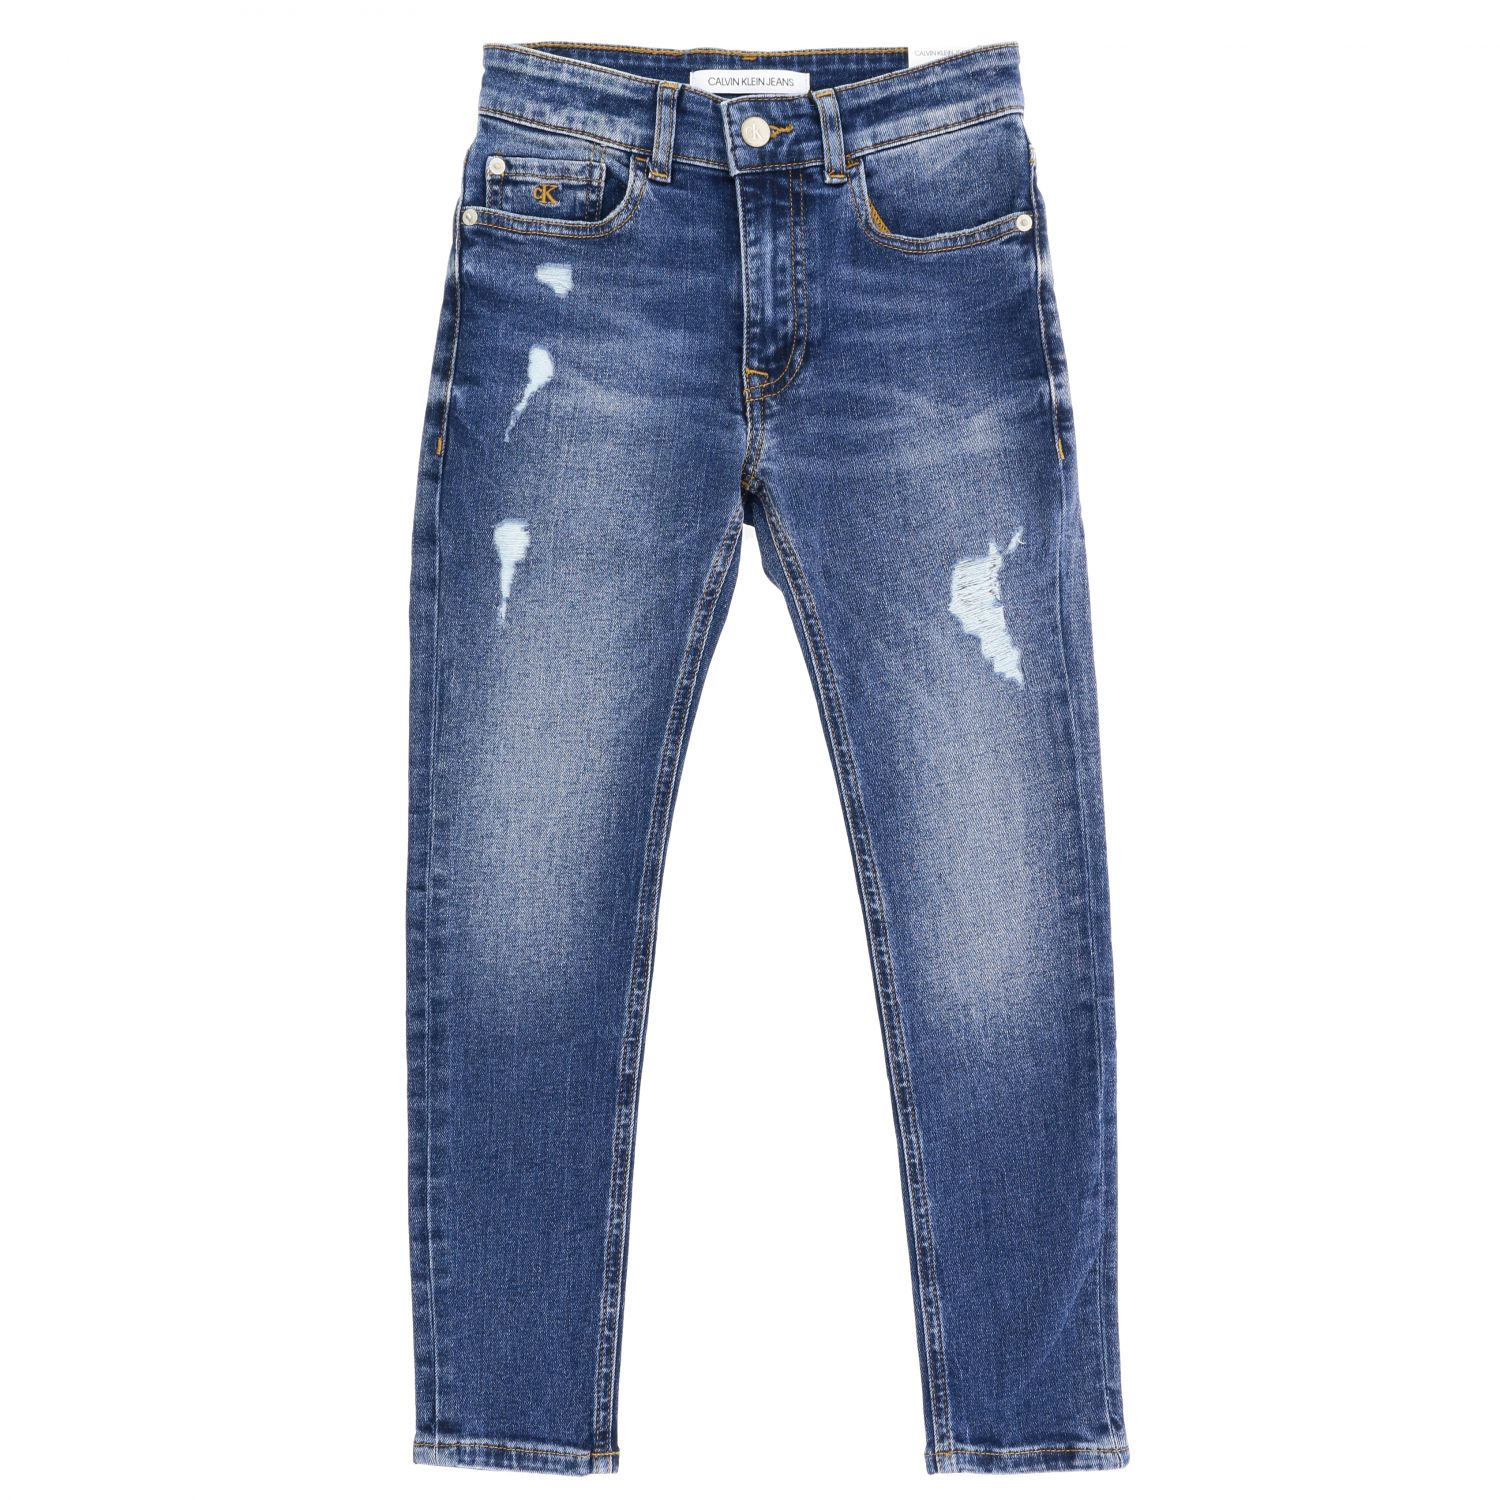 Calvin Klein jeans in used denim with tears blue 1